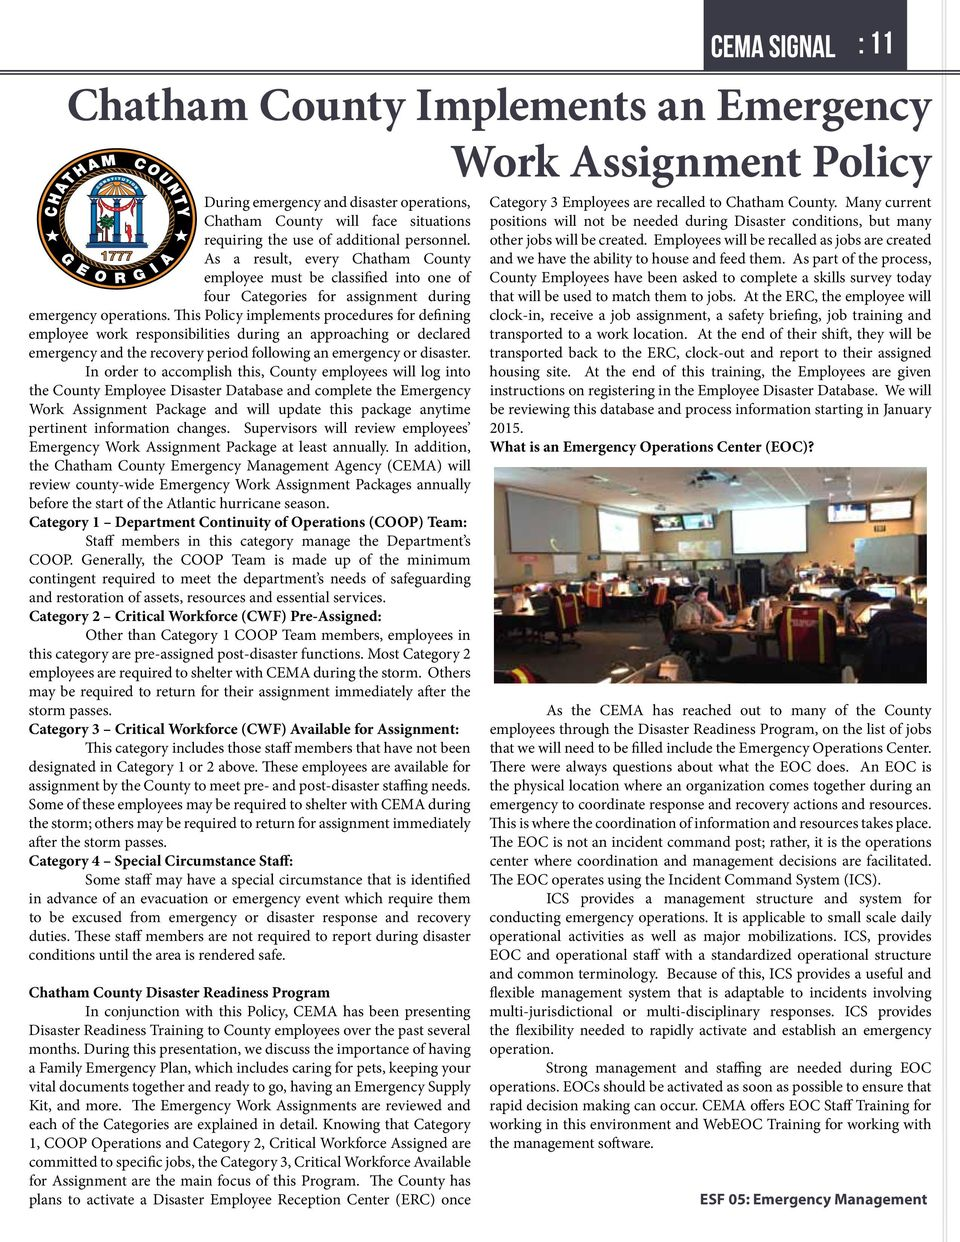 This Policy implements procedures for defining employee work responsibilities during an approaching or declared emergency and the recovery period following an emergency or disaster.